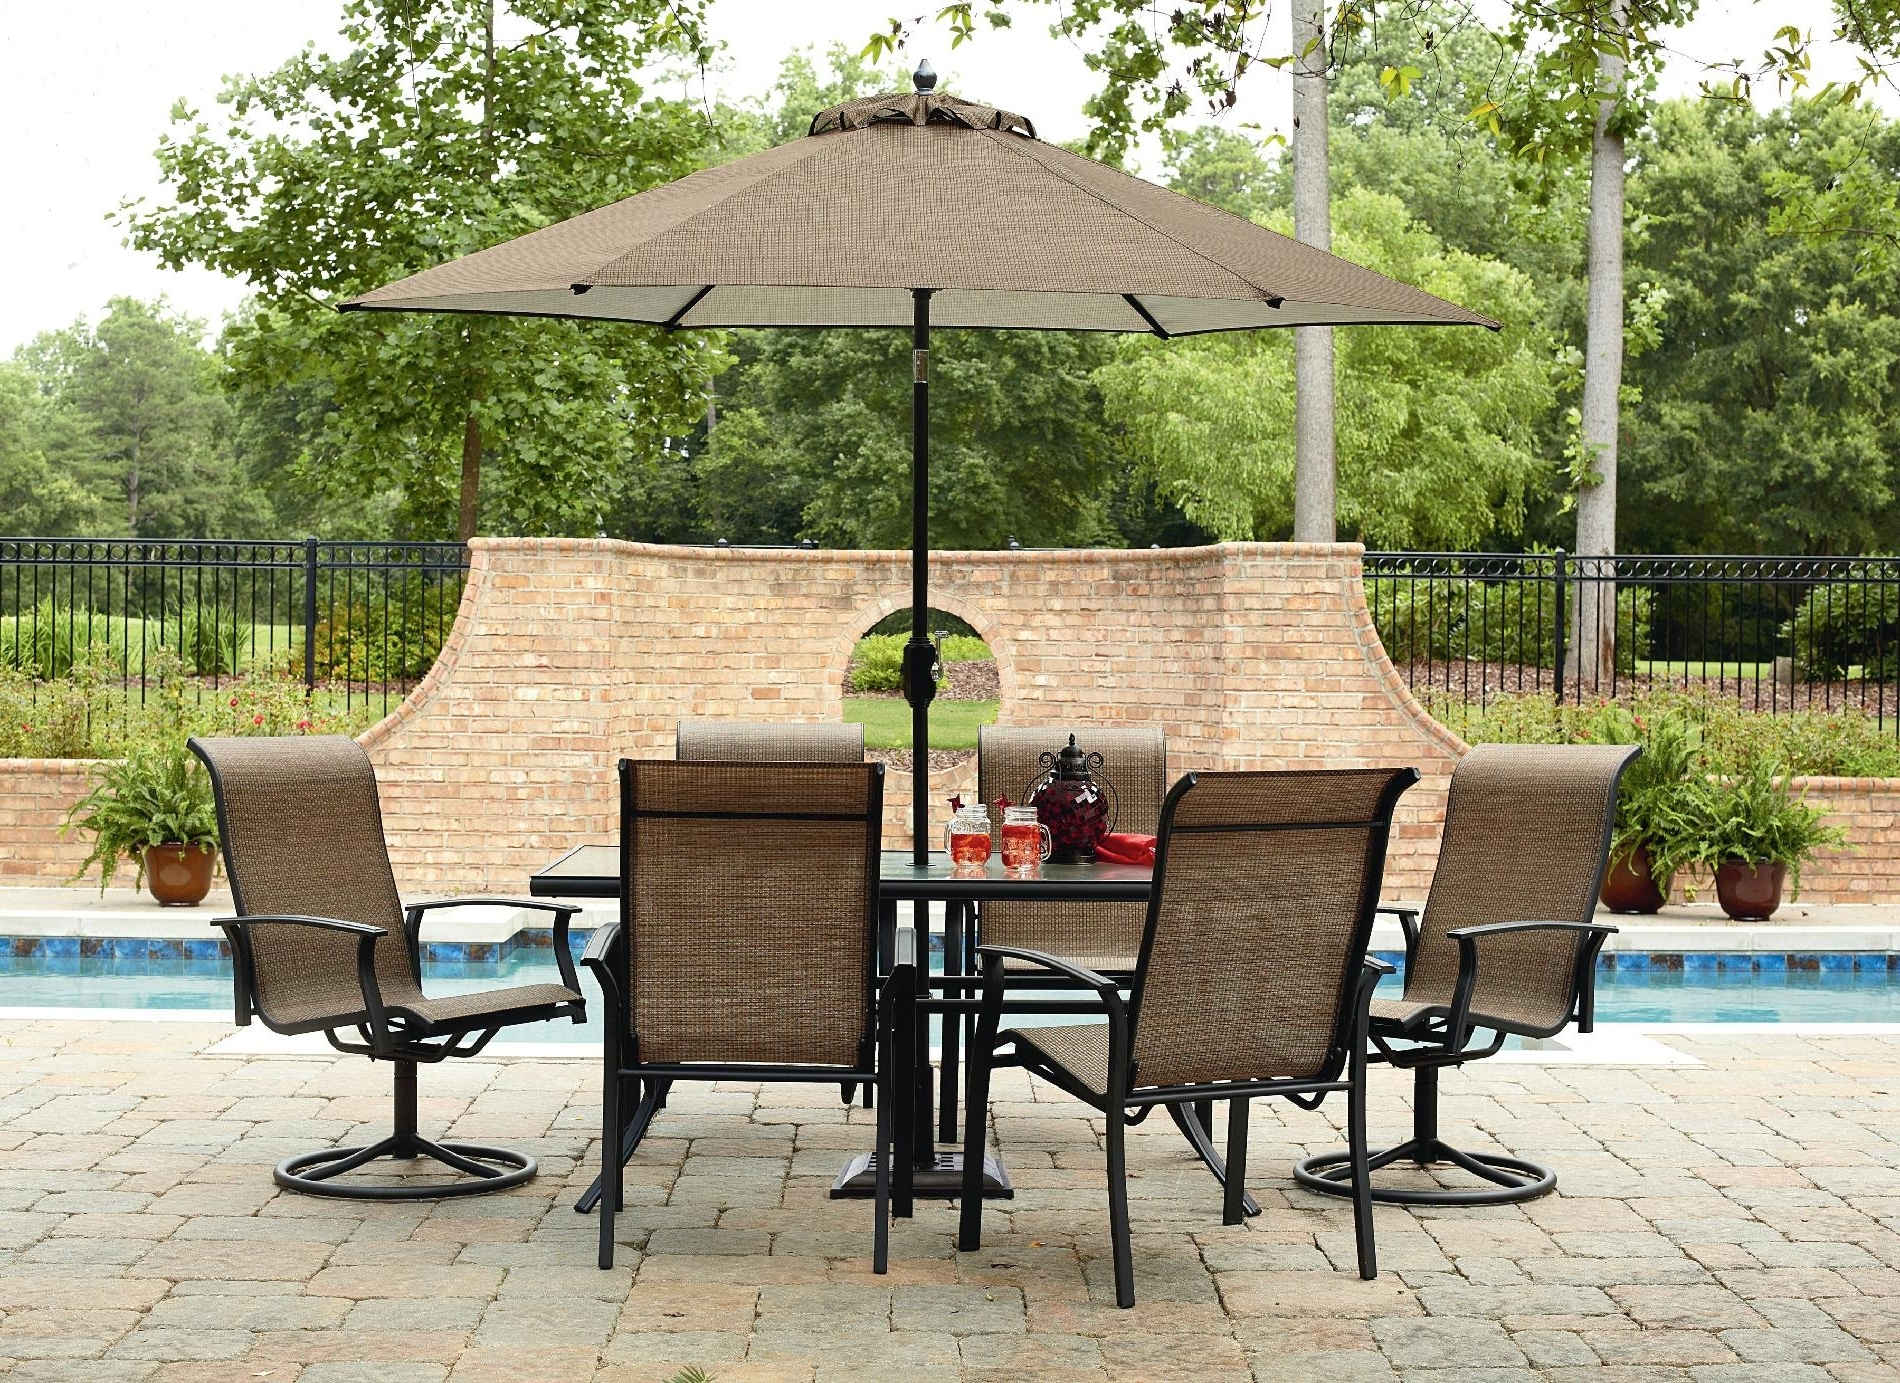 Sears Patio Umbrellas Intended For Favorite Furniture: Kmart Patio Umbrellas (View 17 of 20)